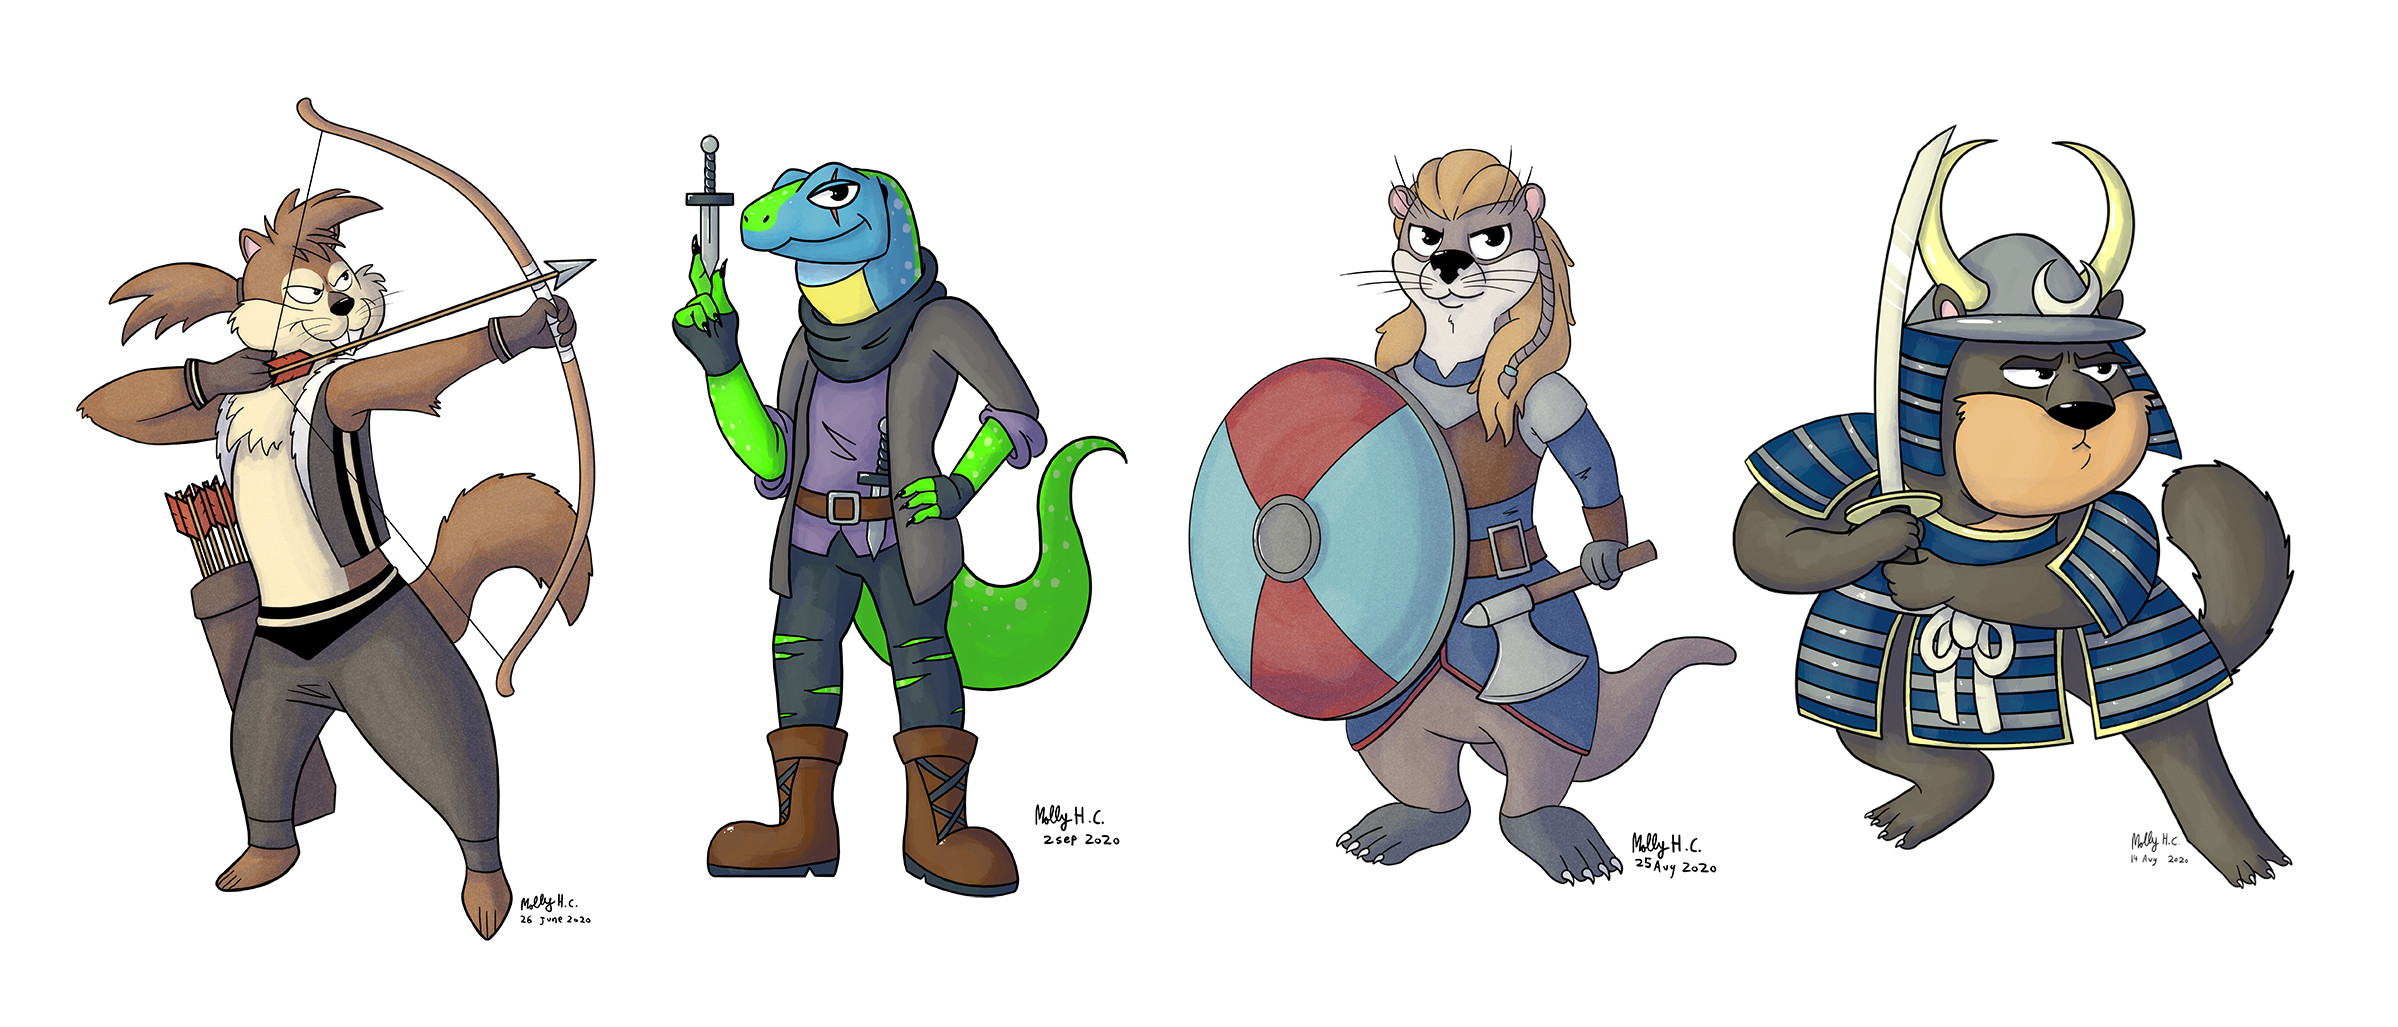 Protaginist Designs   Created for the boardgame King's Trial by Laughing Hyena Games.  (www.laughinghyenagames.com)  © 2020